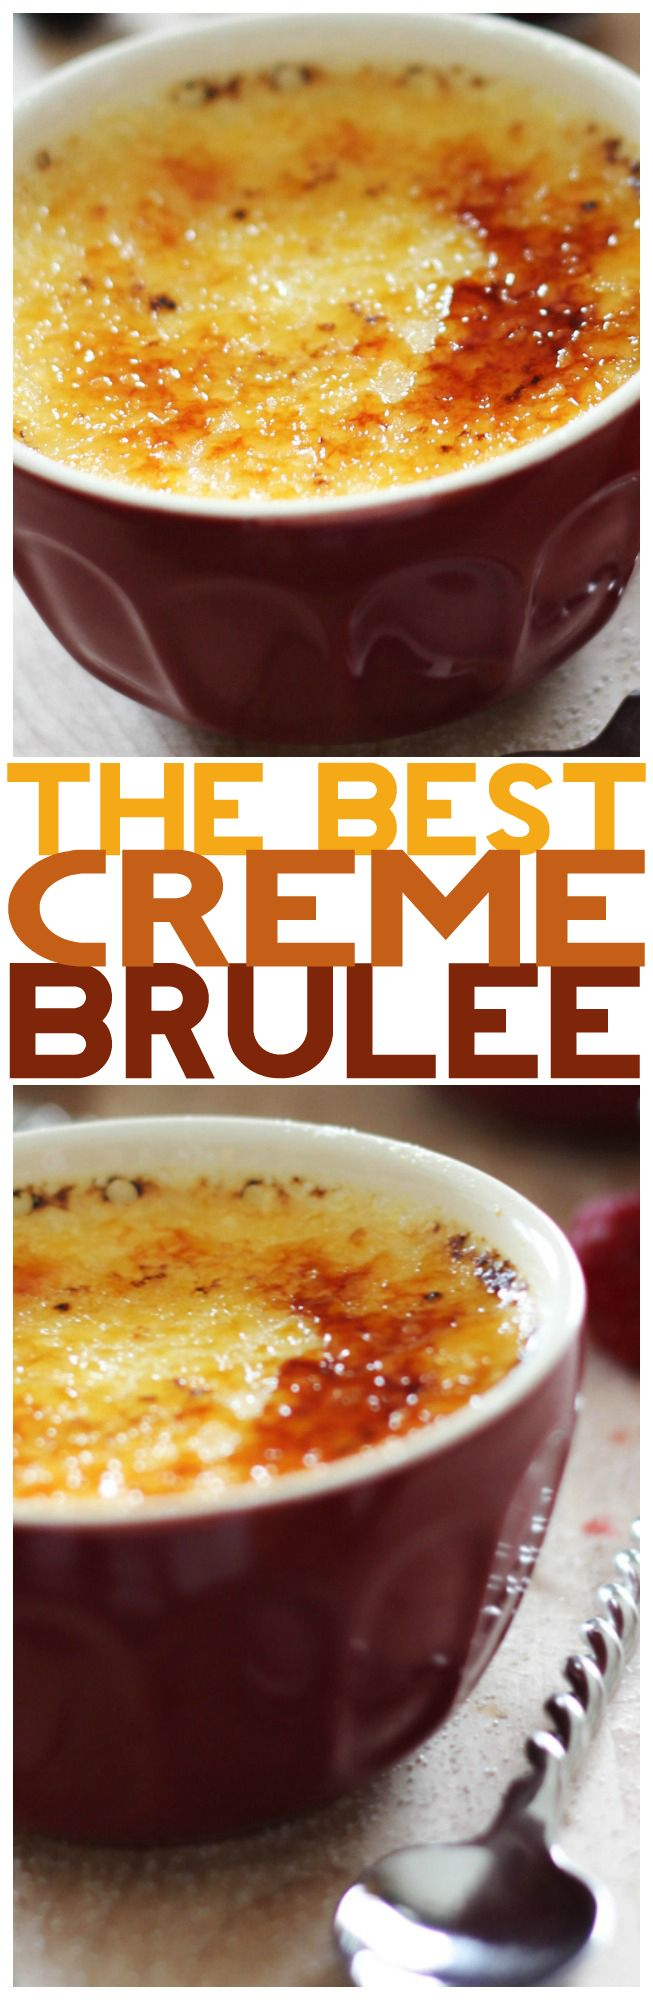 brulee basic creme brulee recipe the blue elephants basic creme brulee ...